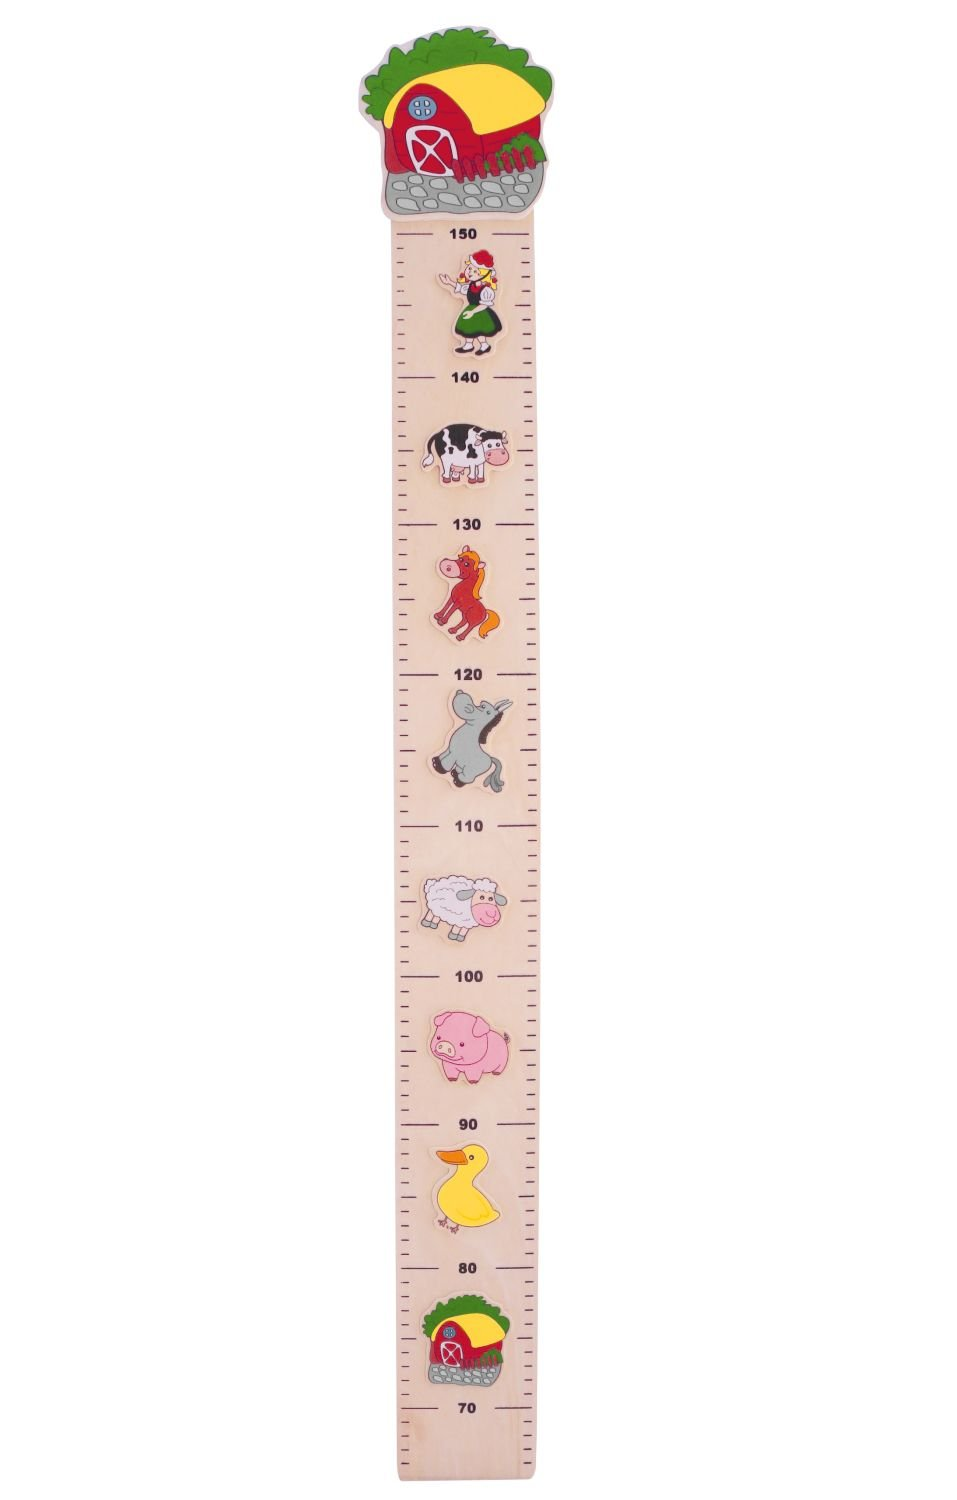 Bieco 74092170 Farm-Themed Height Chart for Children 102 x 13.5 x 1.5 cm